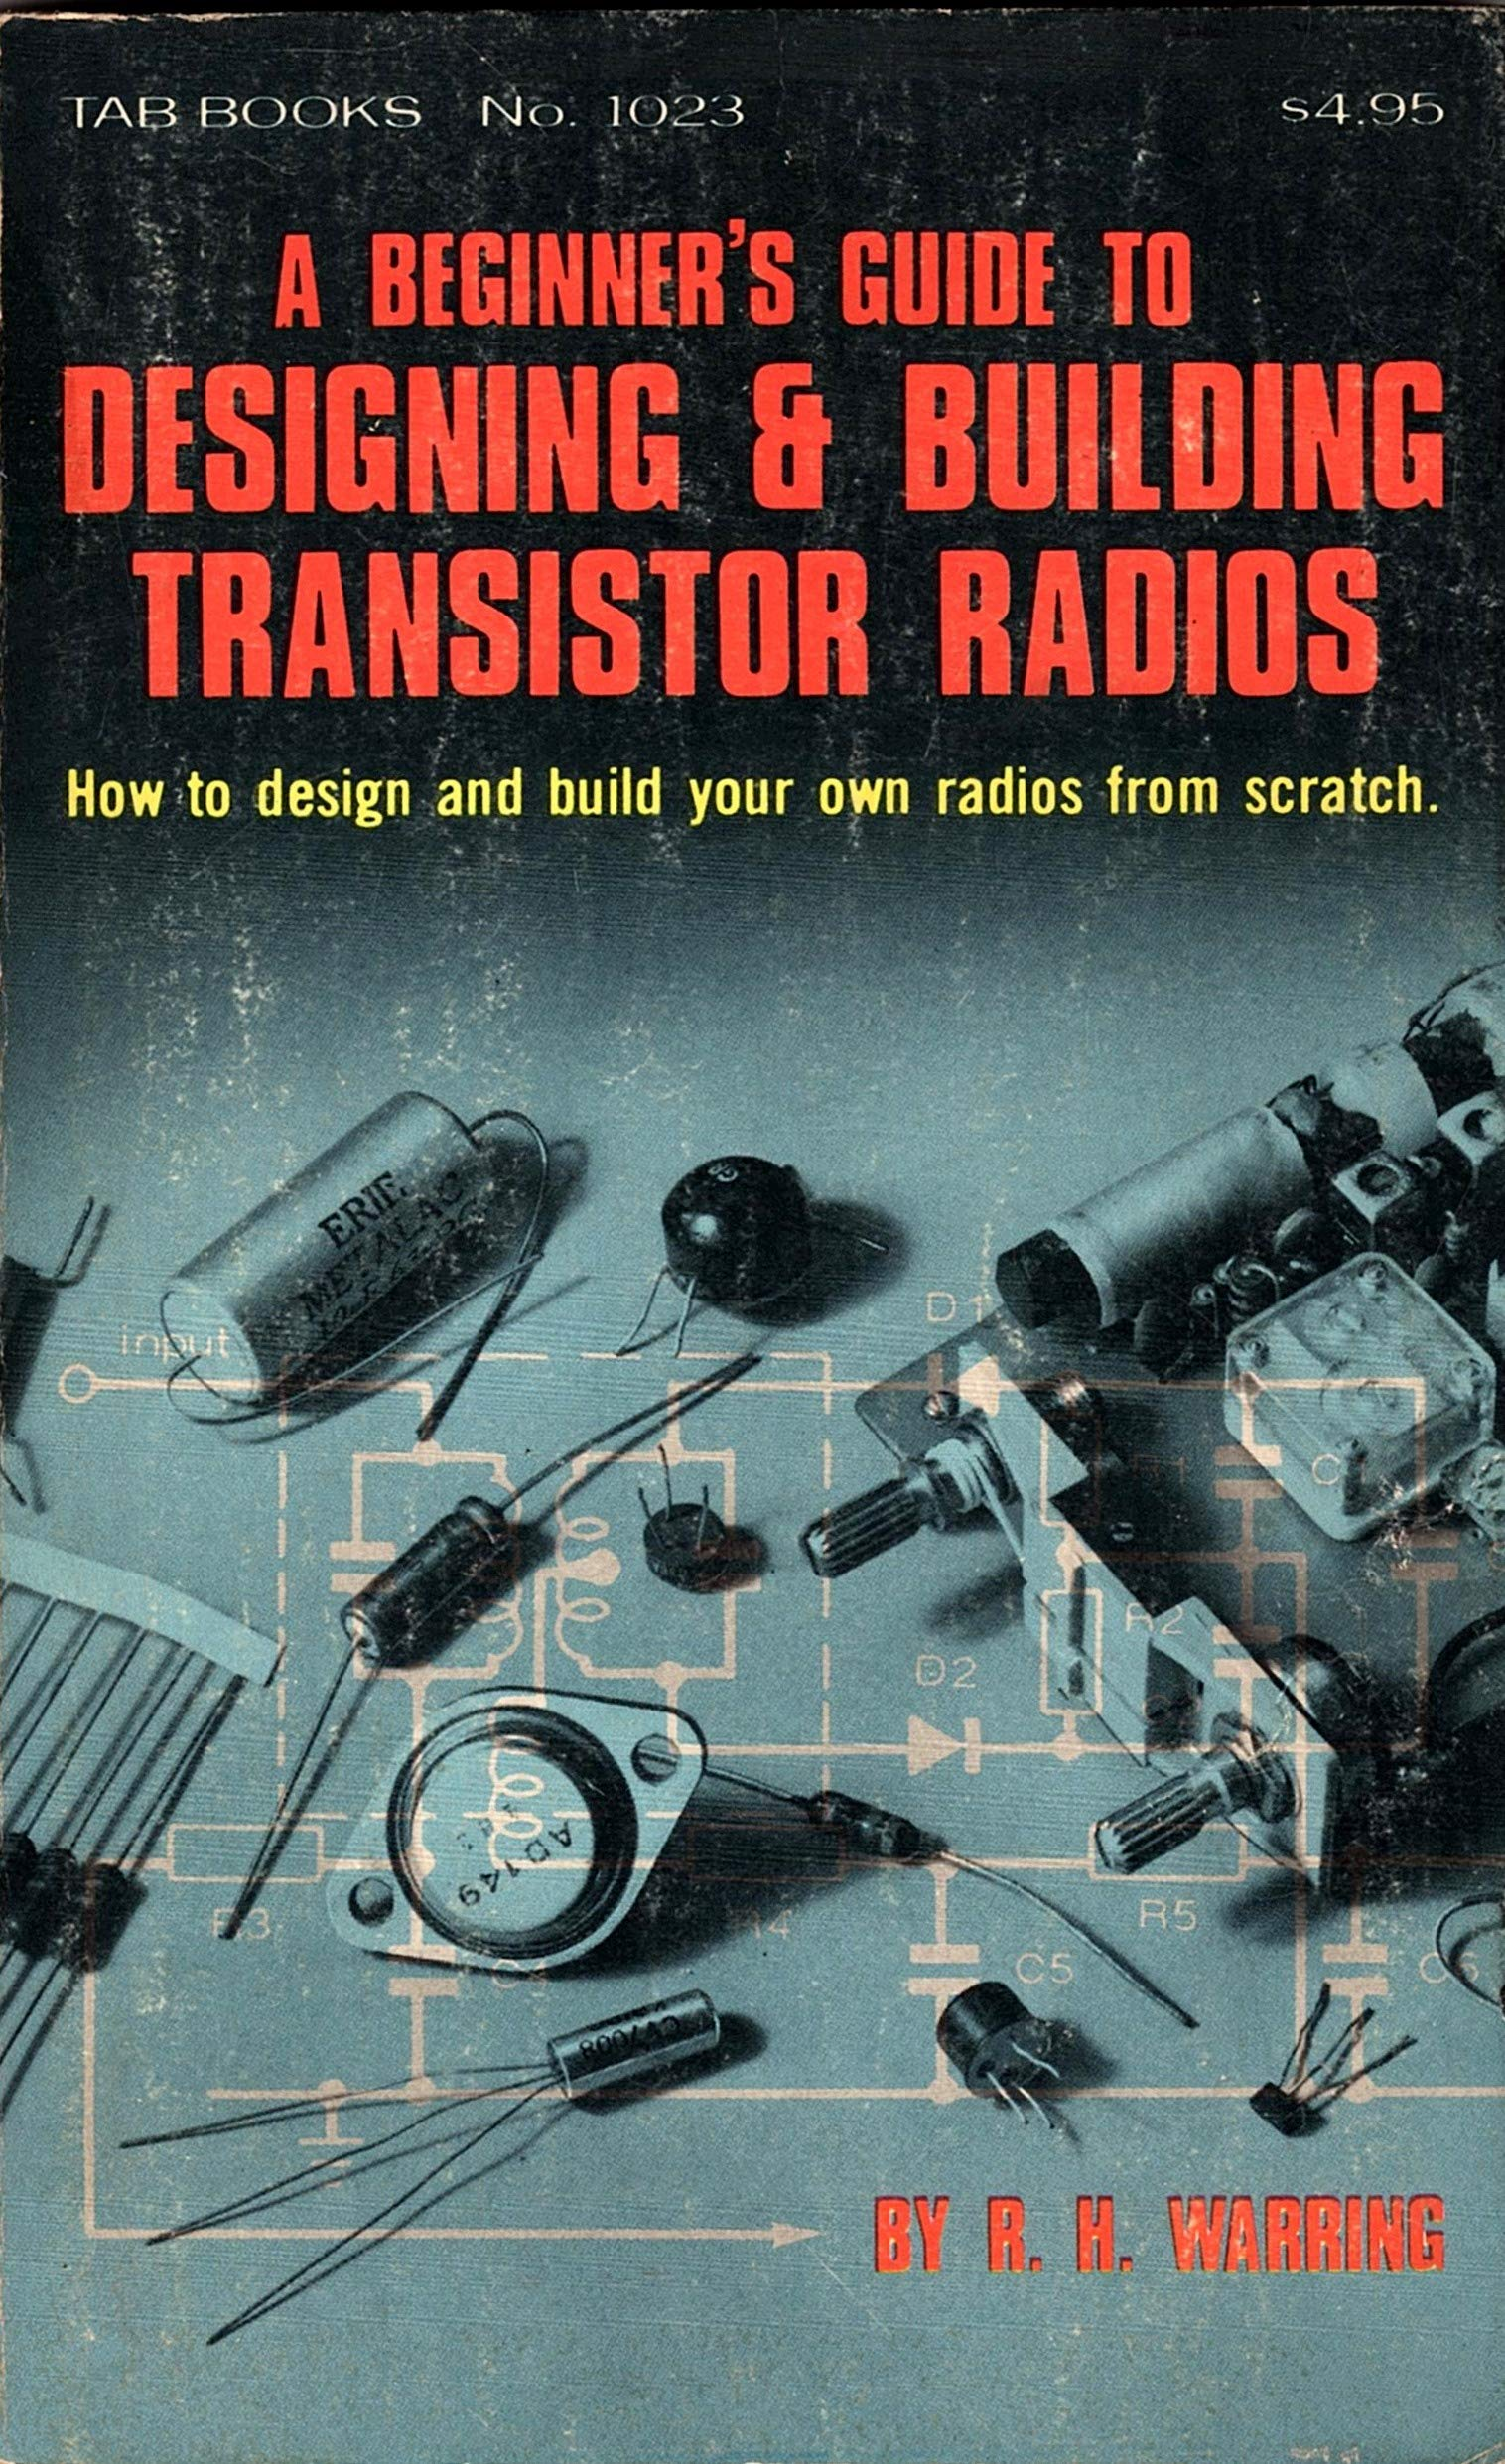 A Beginner S Guide To Designing Building Transistor Radios How To Design And Build Your Own Radios From Scratch Warring R H 9780830610235 Amazon Com Books